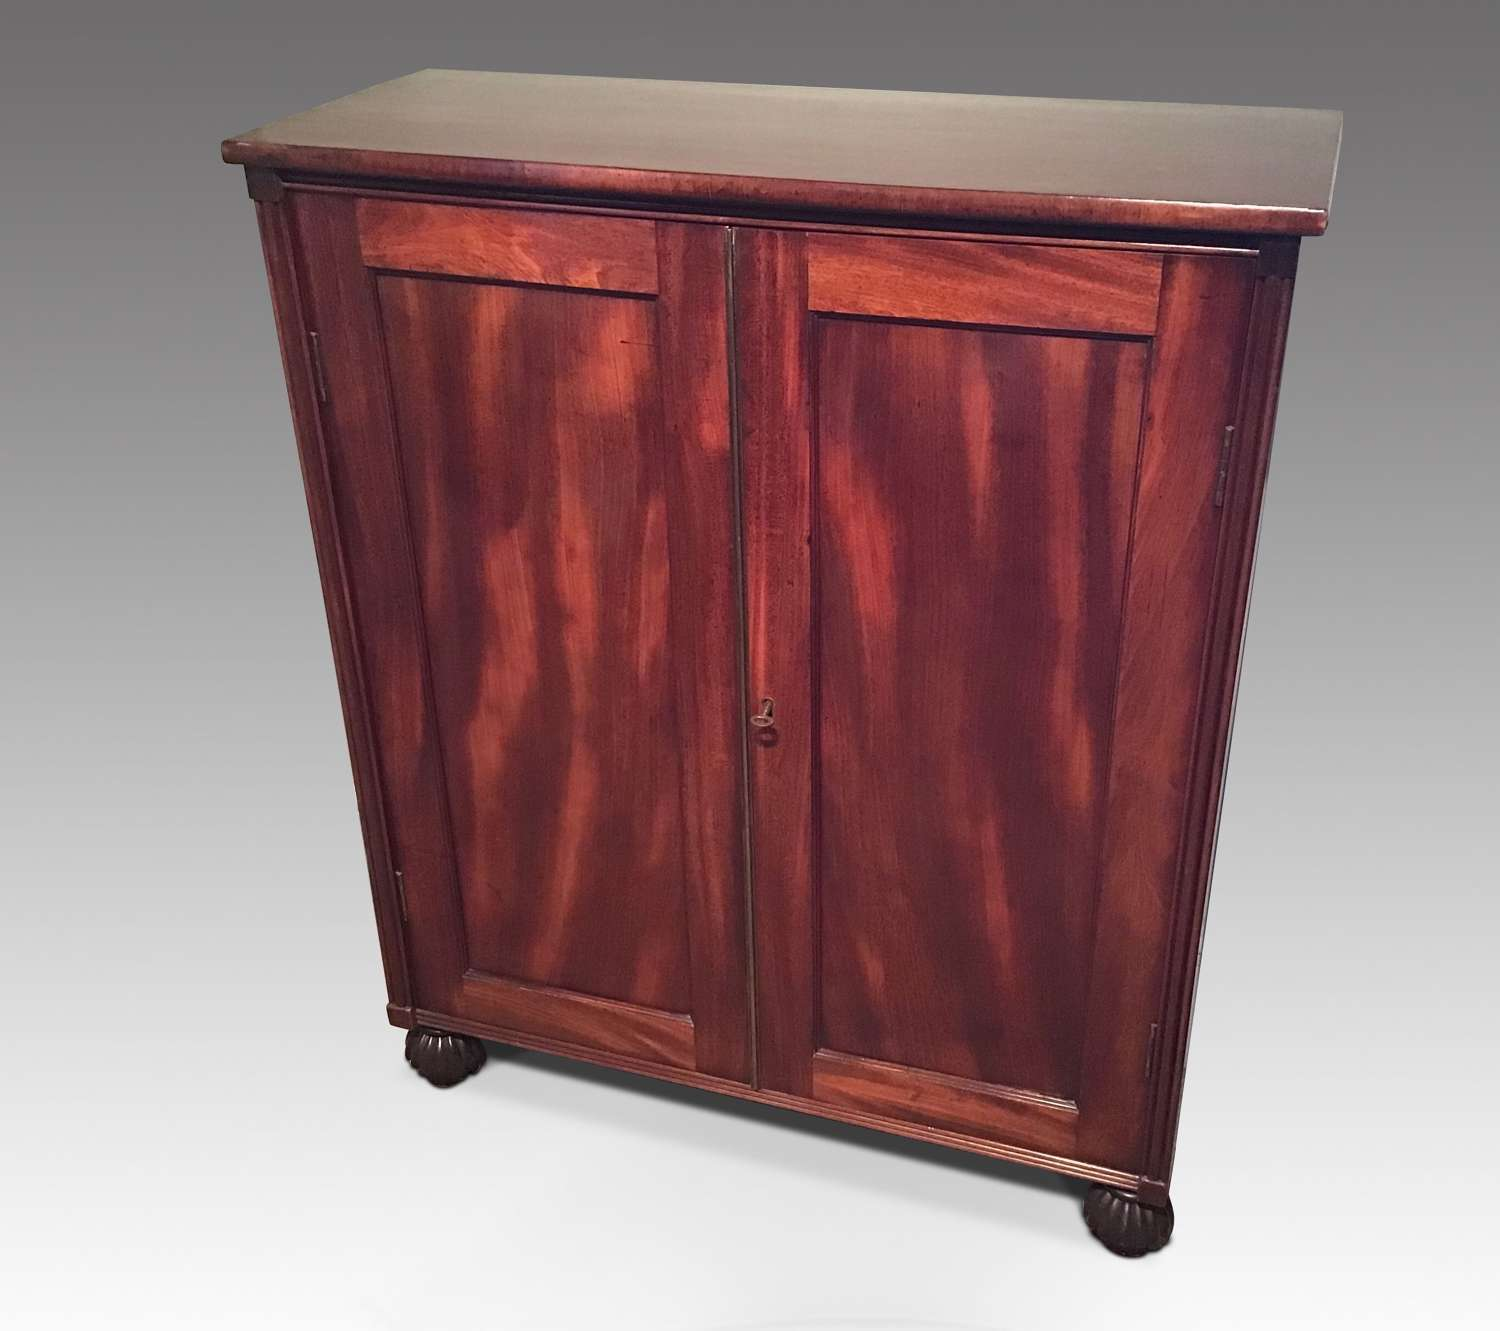 Sidecabinet